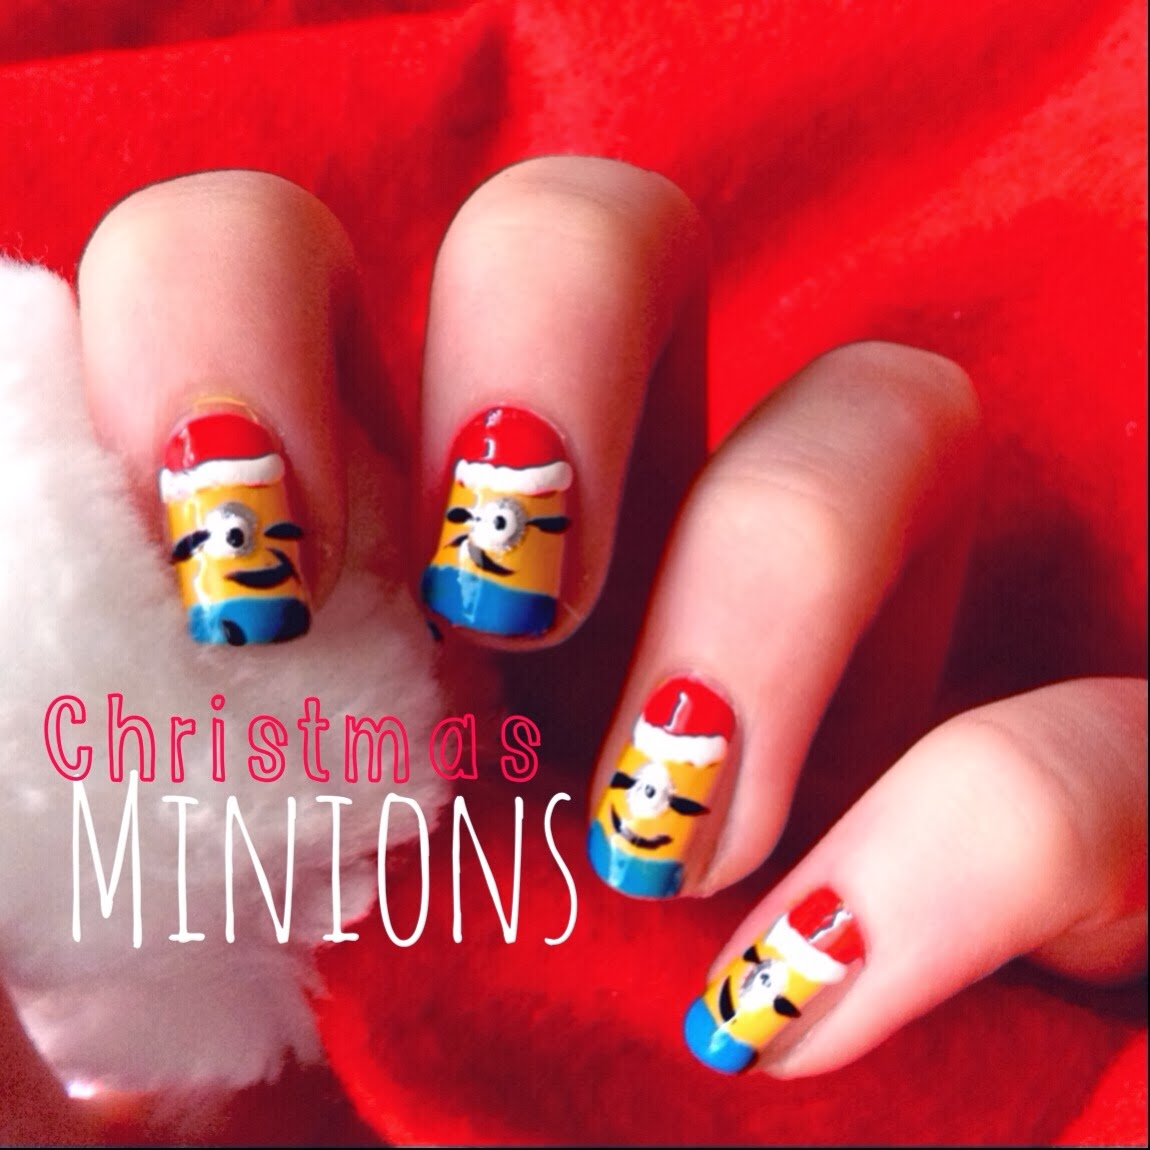 Christmas 2013 Nail Art: Christmas Minions Nails